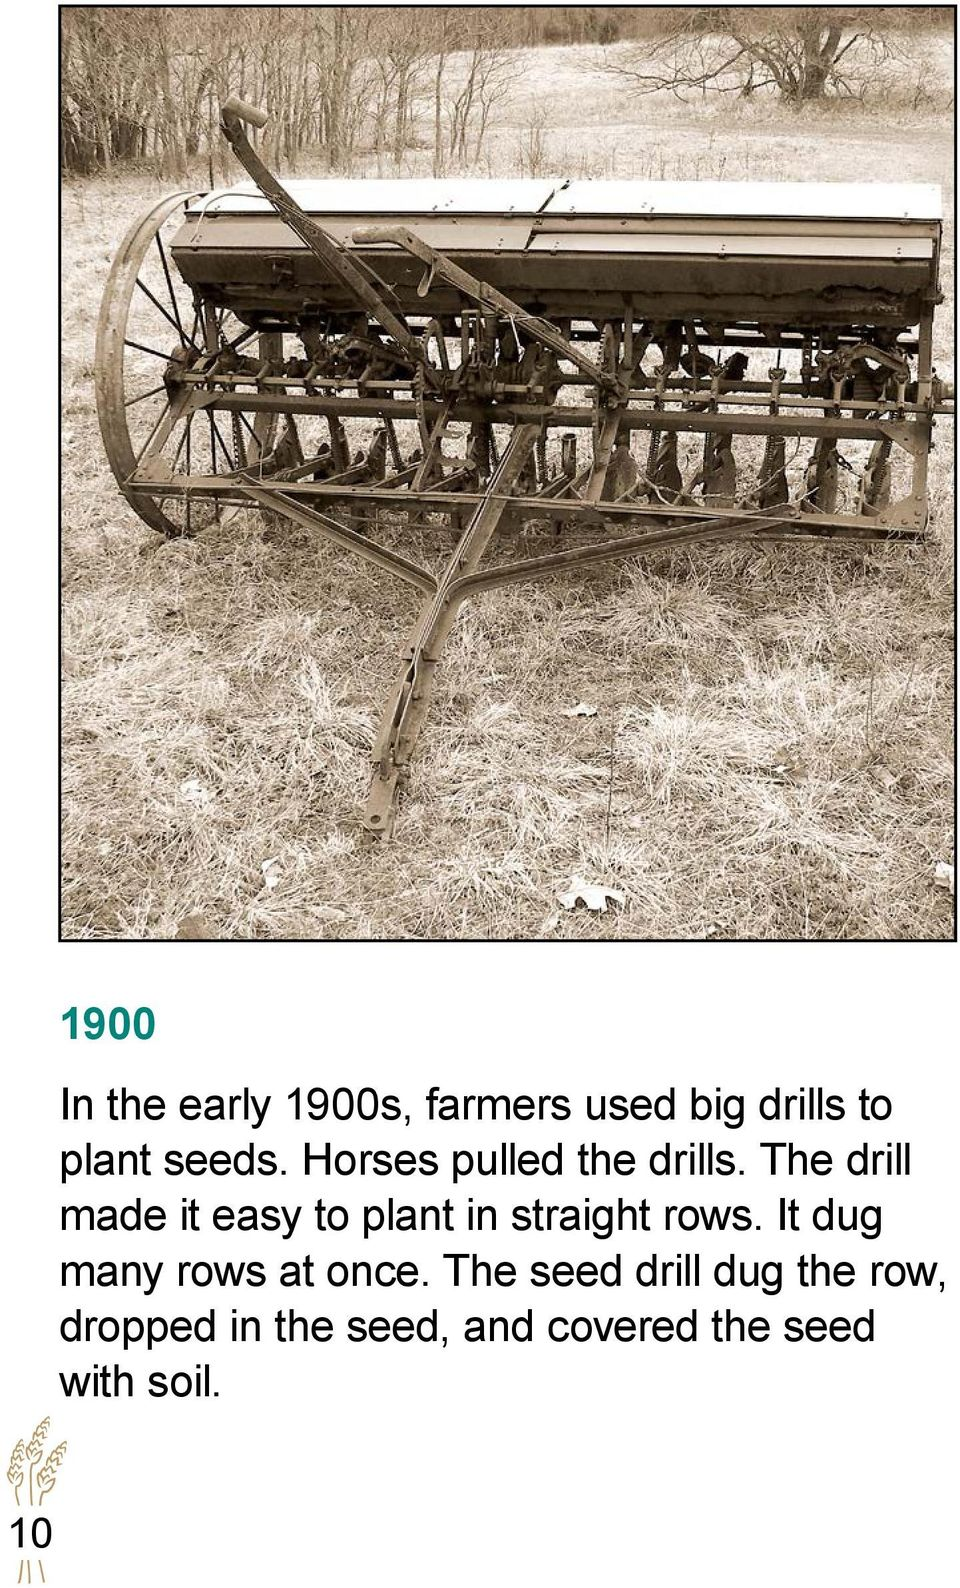 The drill made it easy to plant in straight rows.